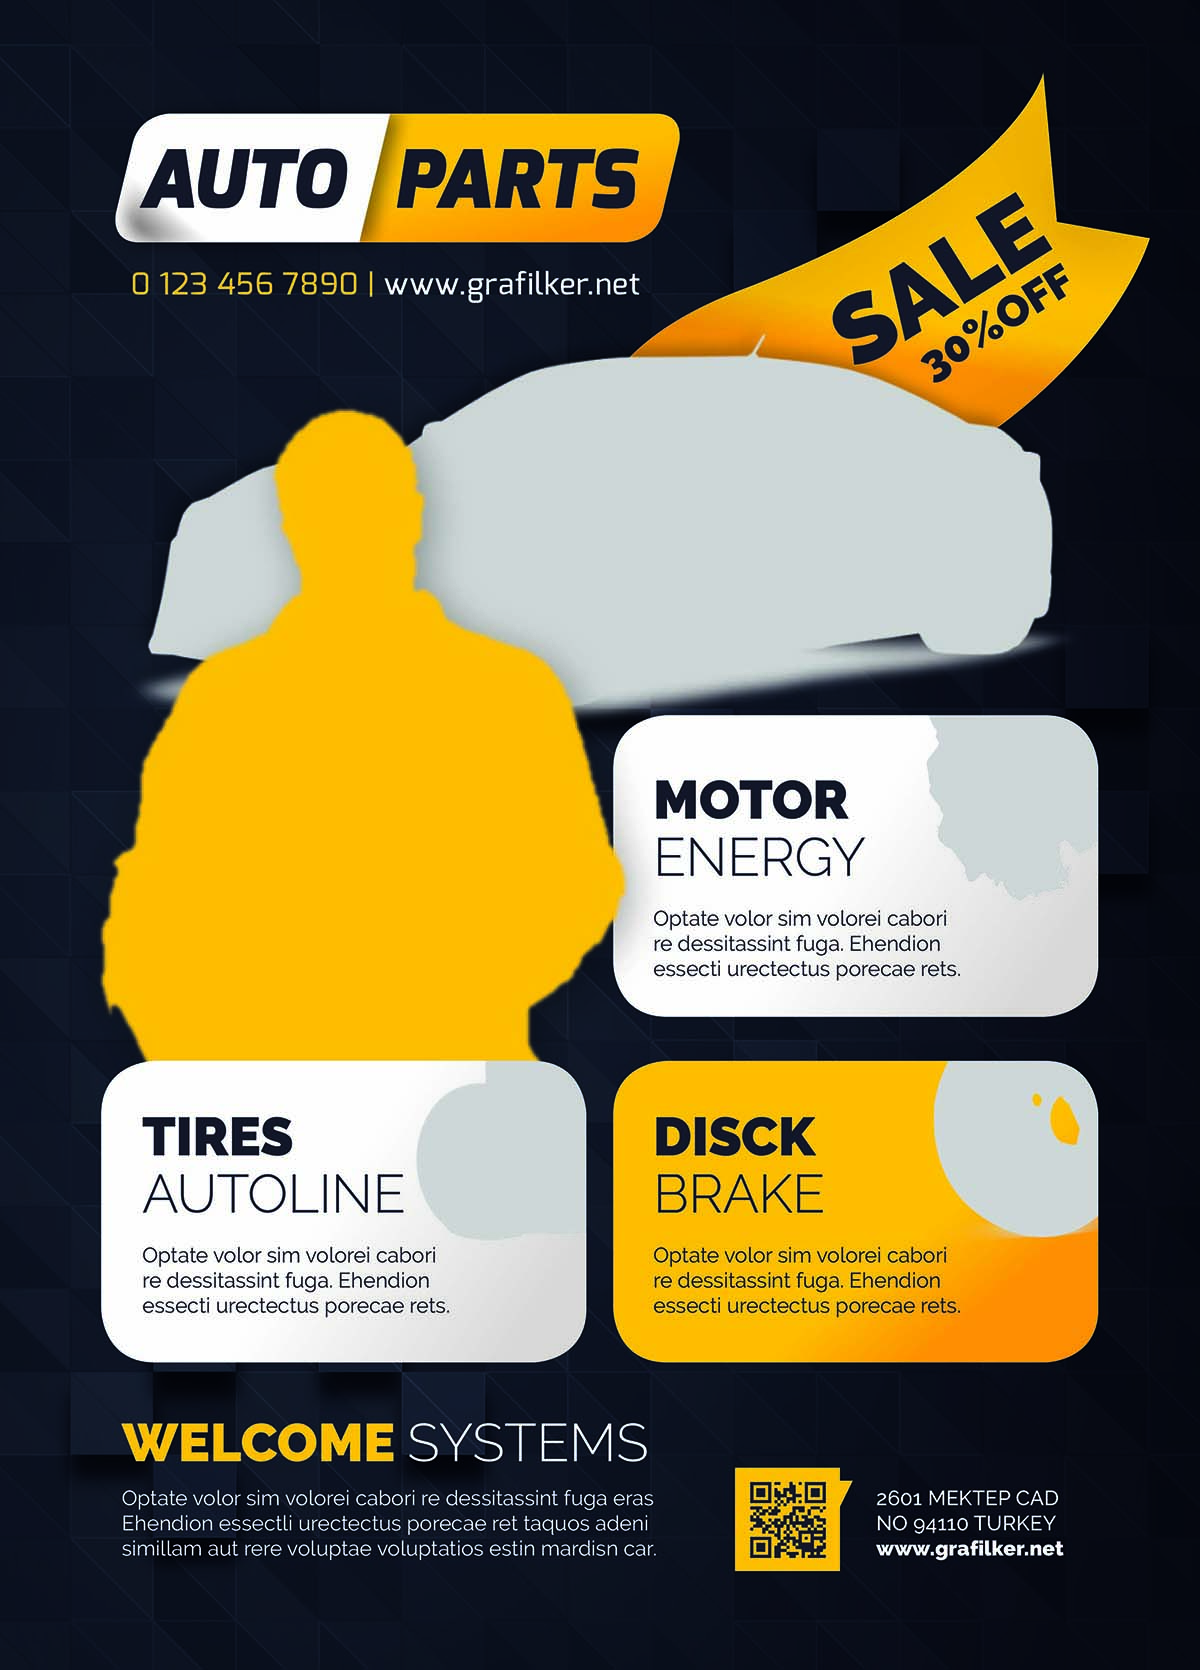 Auto spare parts flyer design | Free download